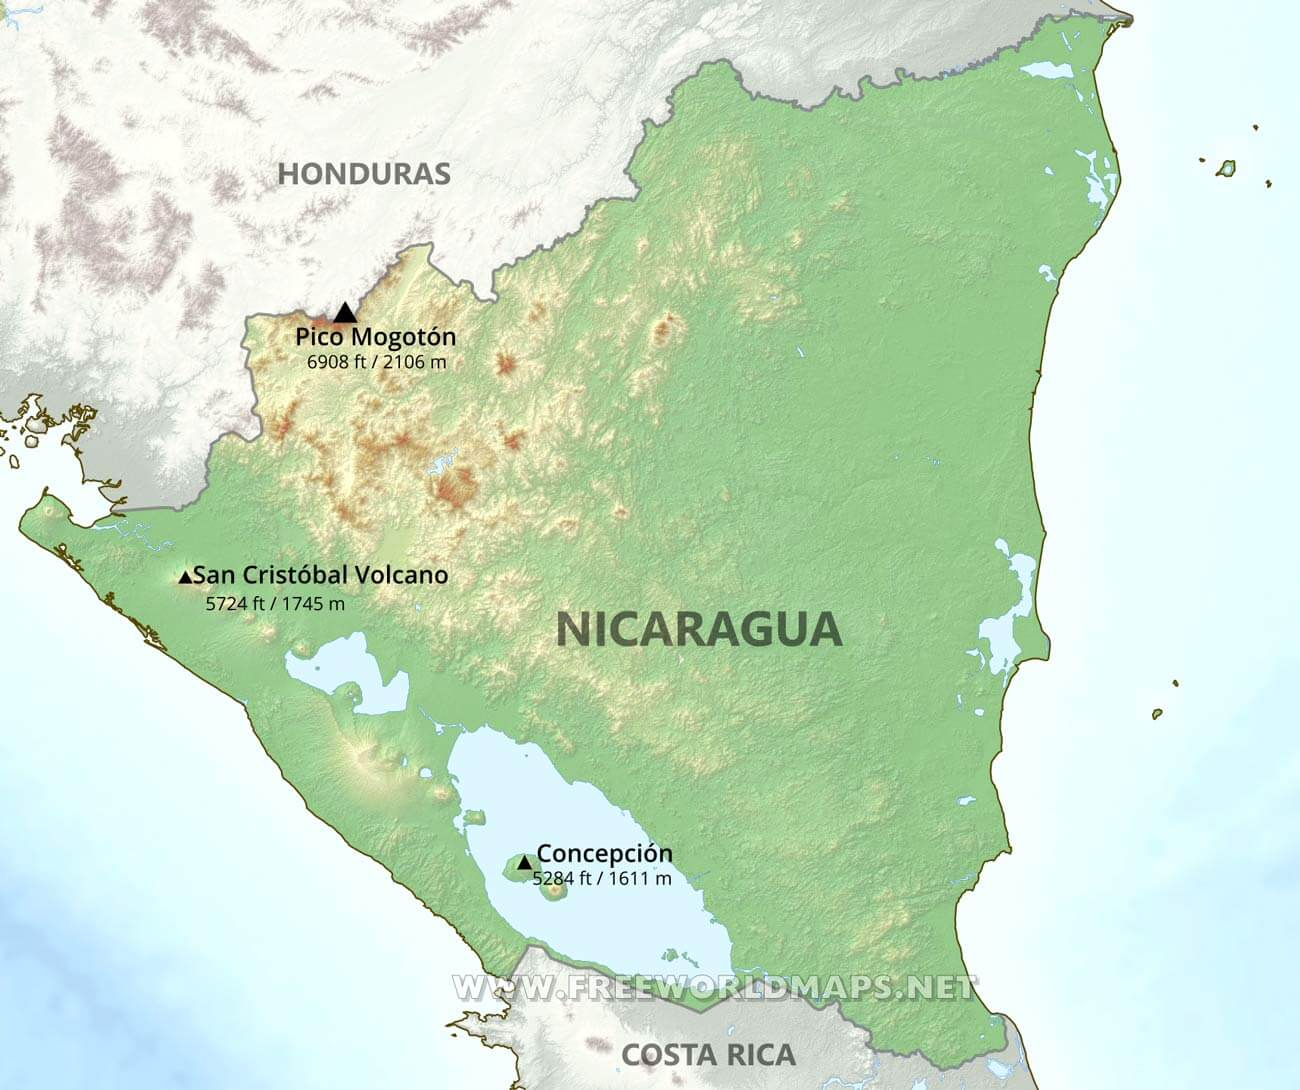 a geography of nicaragua Nicaragua (officially the republic of nicaragua spanish: república de nicaragua) is a country in central america, bordering both the caribbean sea and the north pacific ocean, between costa rica and honduras nicaragua is the largest country in central america nicaragua covers a total area of .